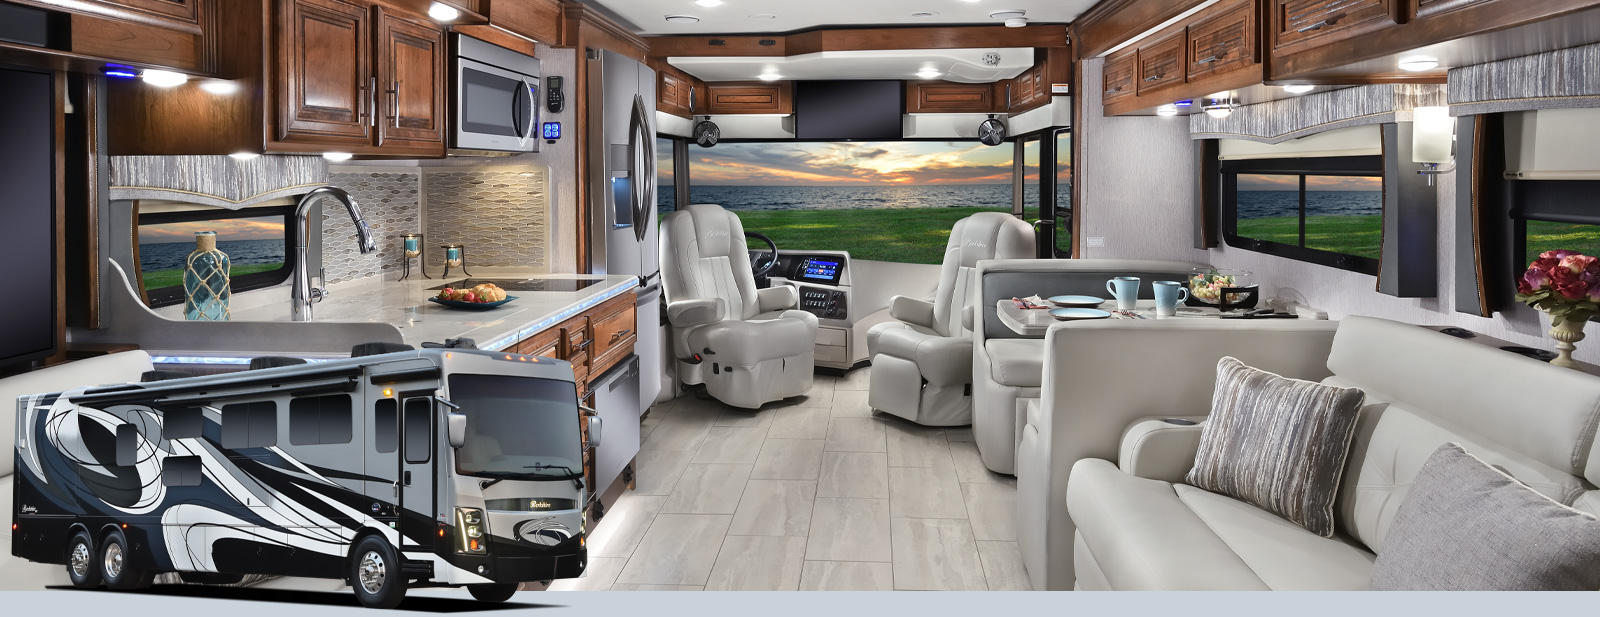 Berkshire Xlt Class A Motorhomes By Forest River Rv